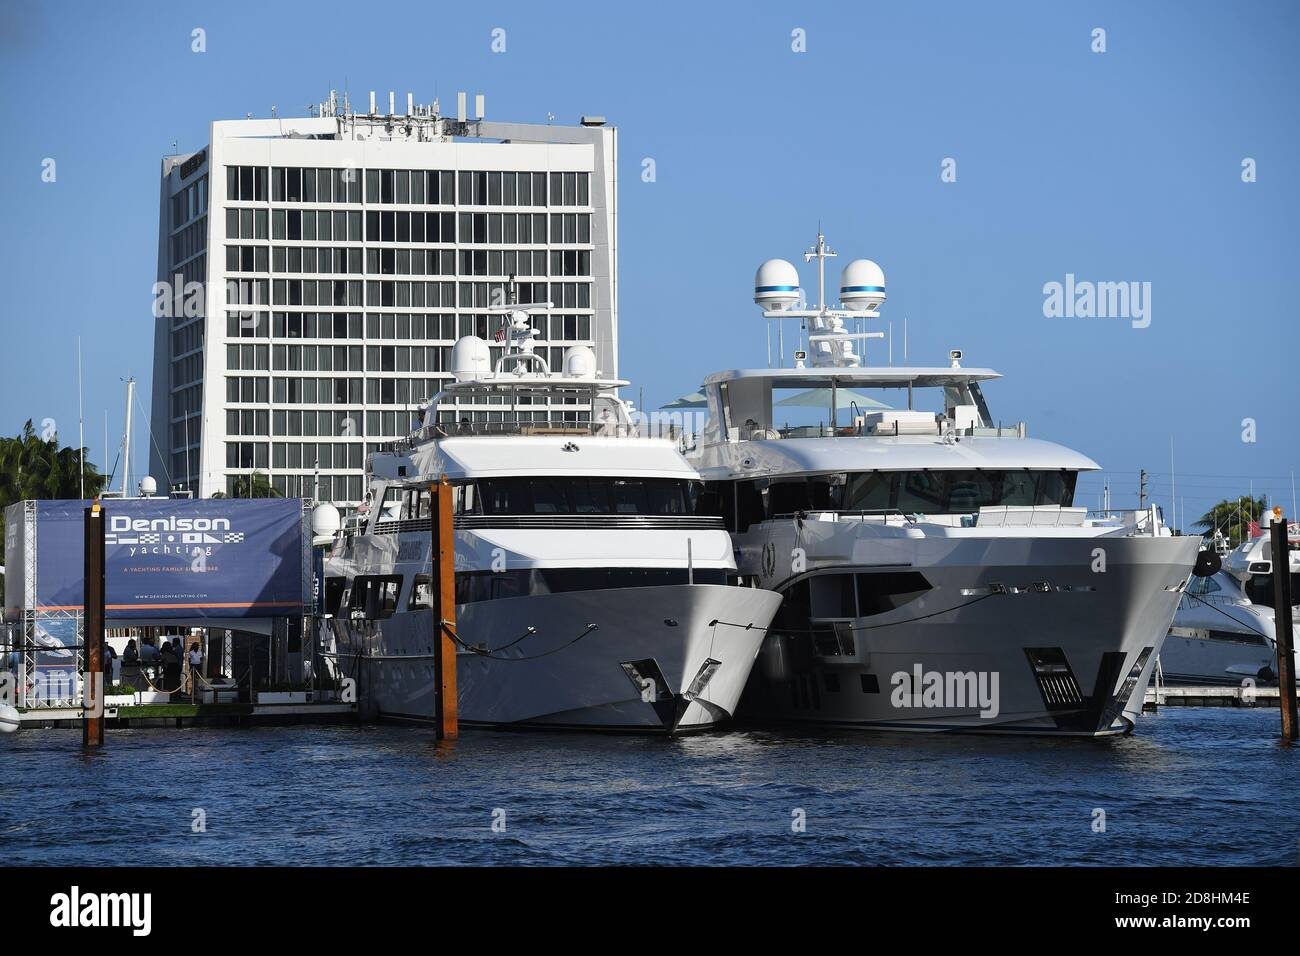 Fort Lauderdale FL, USA. 29th Oct, 2020. Yachts seen docked during the Fort Lauderdale International Boat Show at the Fort Lauderdale Marina on October 29, 2020 in Fort Lauderdale, Florida. Credit: Mpi04/Media Punch/Alamy Live News Stock Photo